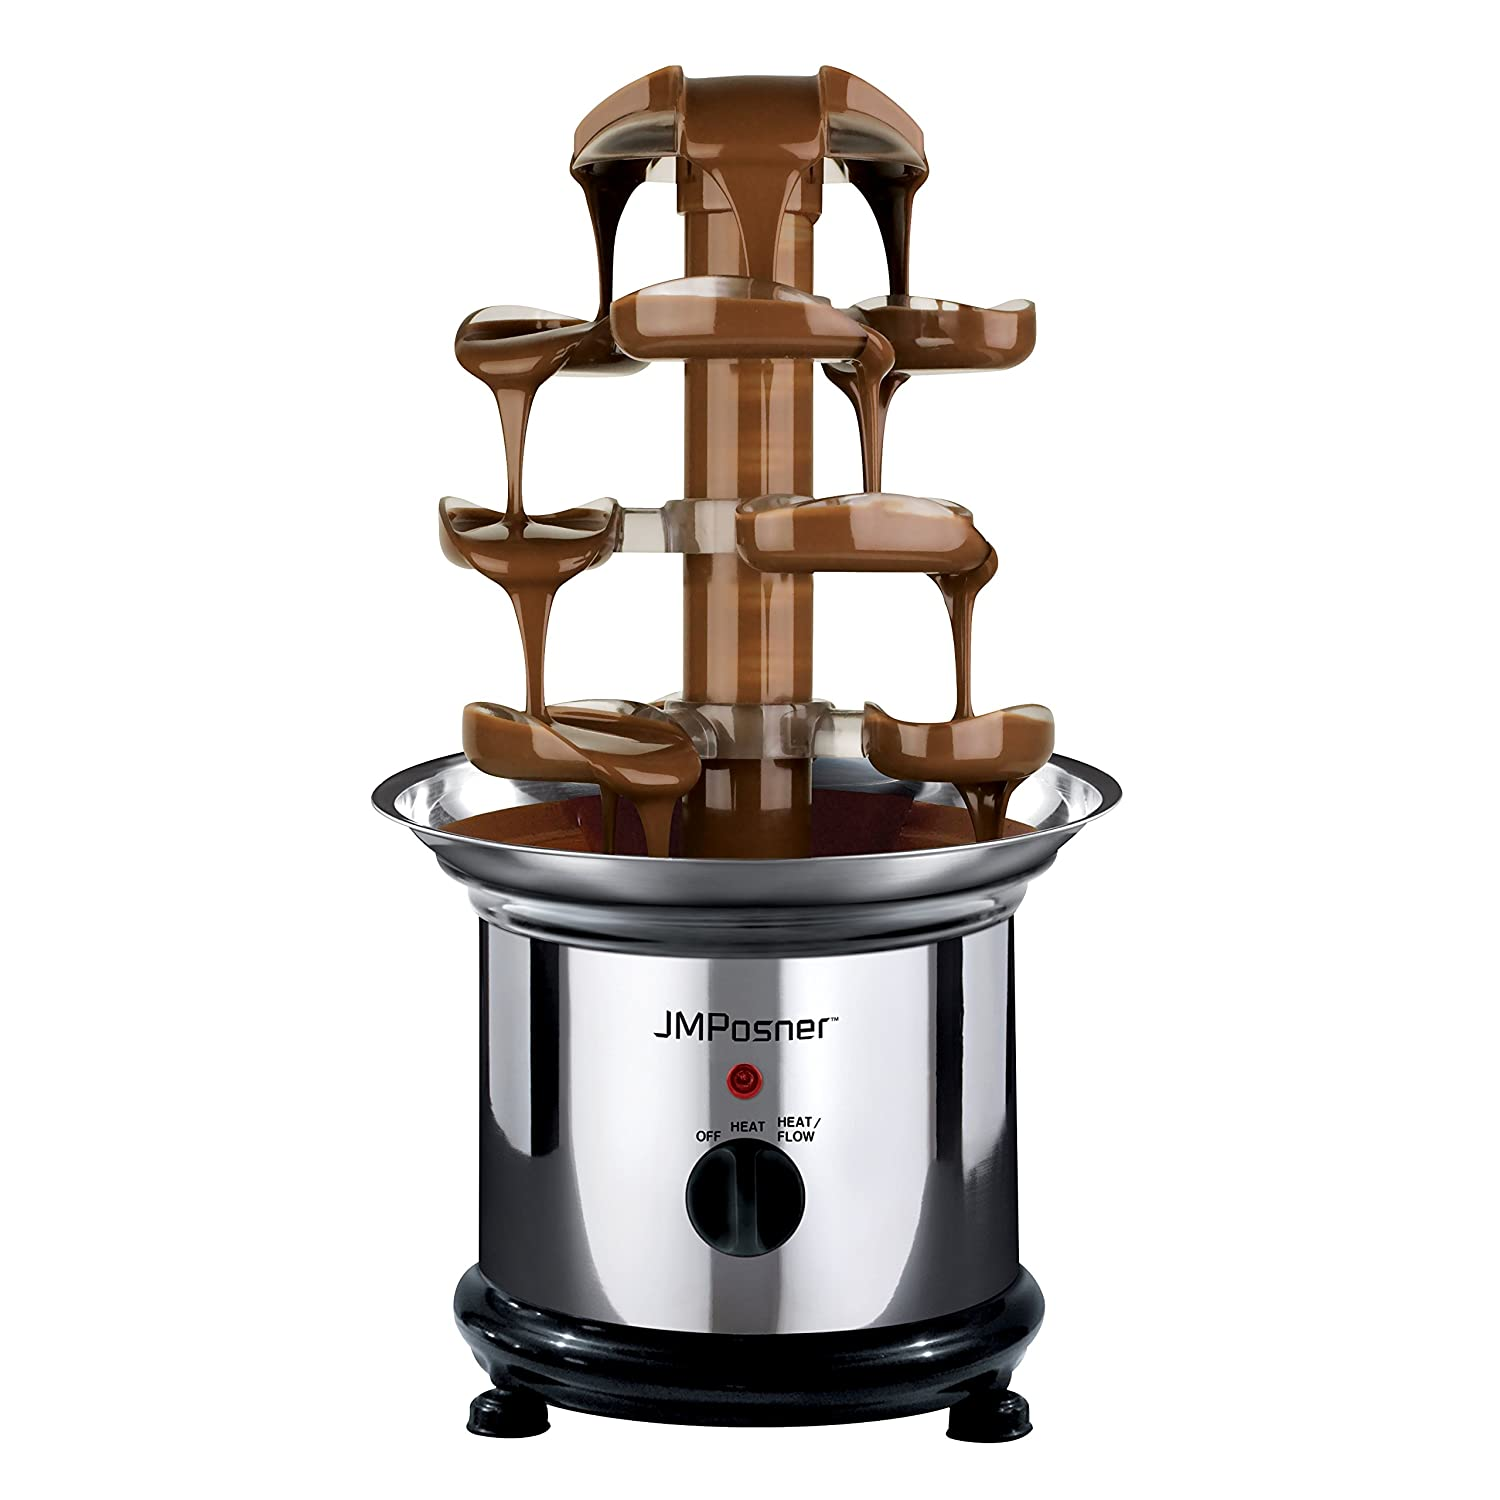 Amazon.co.uk: Chocolate Fountains: Home & Kitchen